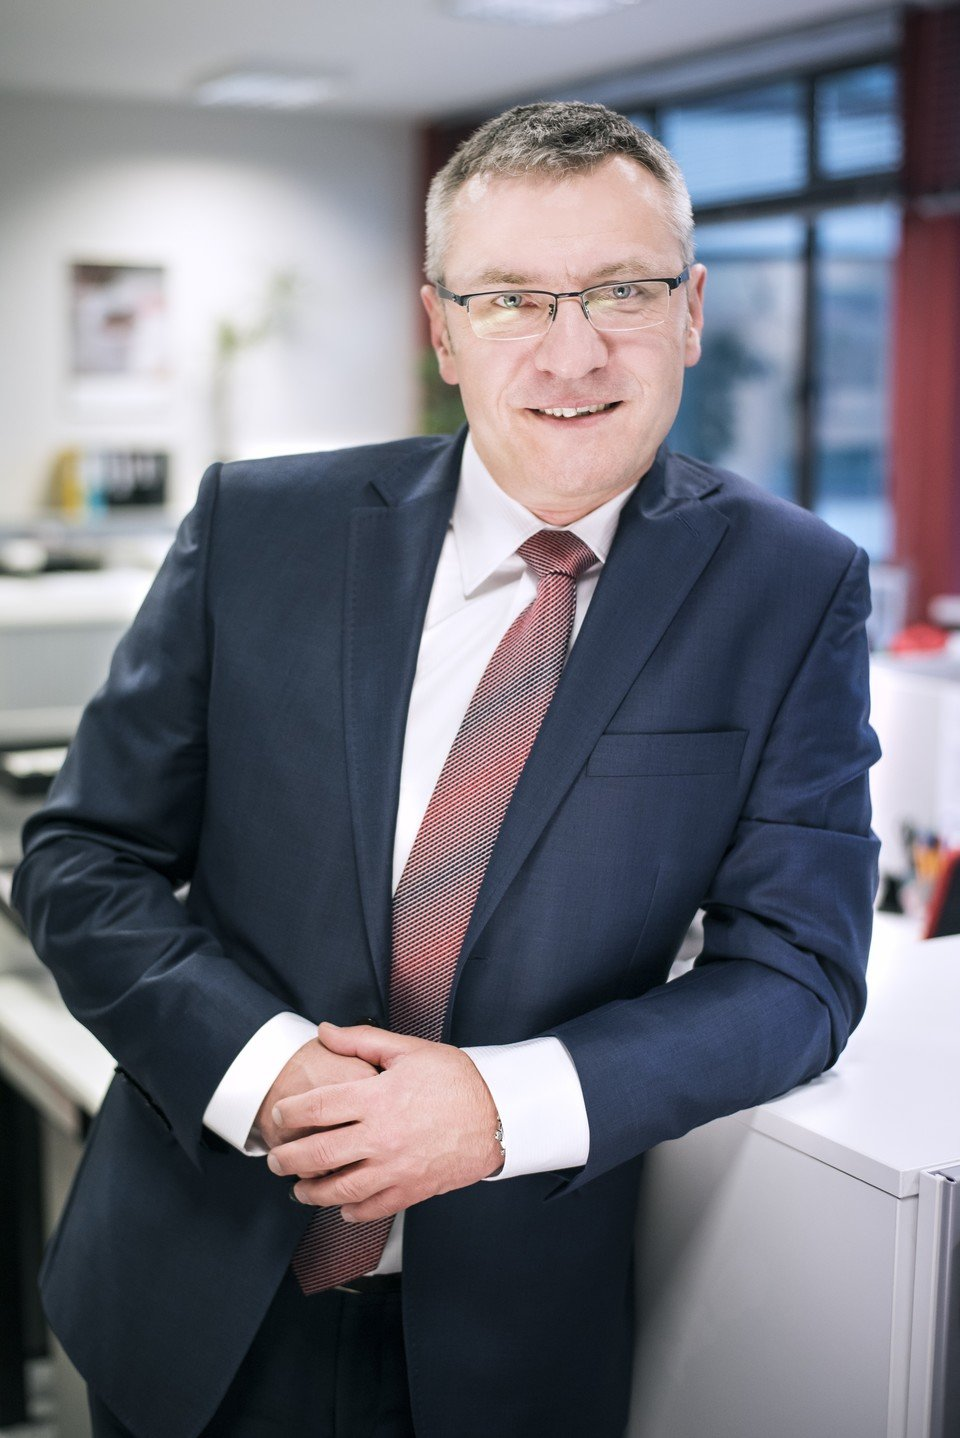 Artur Sroka, Head of the Industrial Department at Bureau Veritas Polska Sp. o.o.